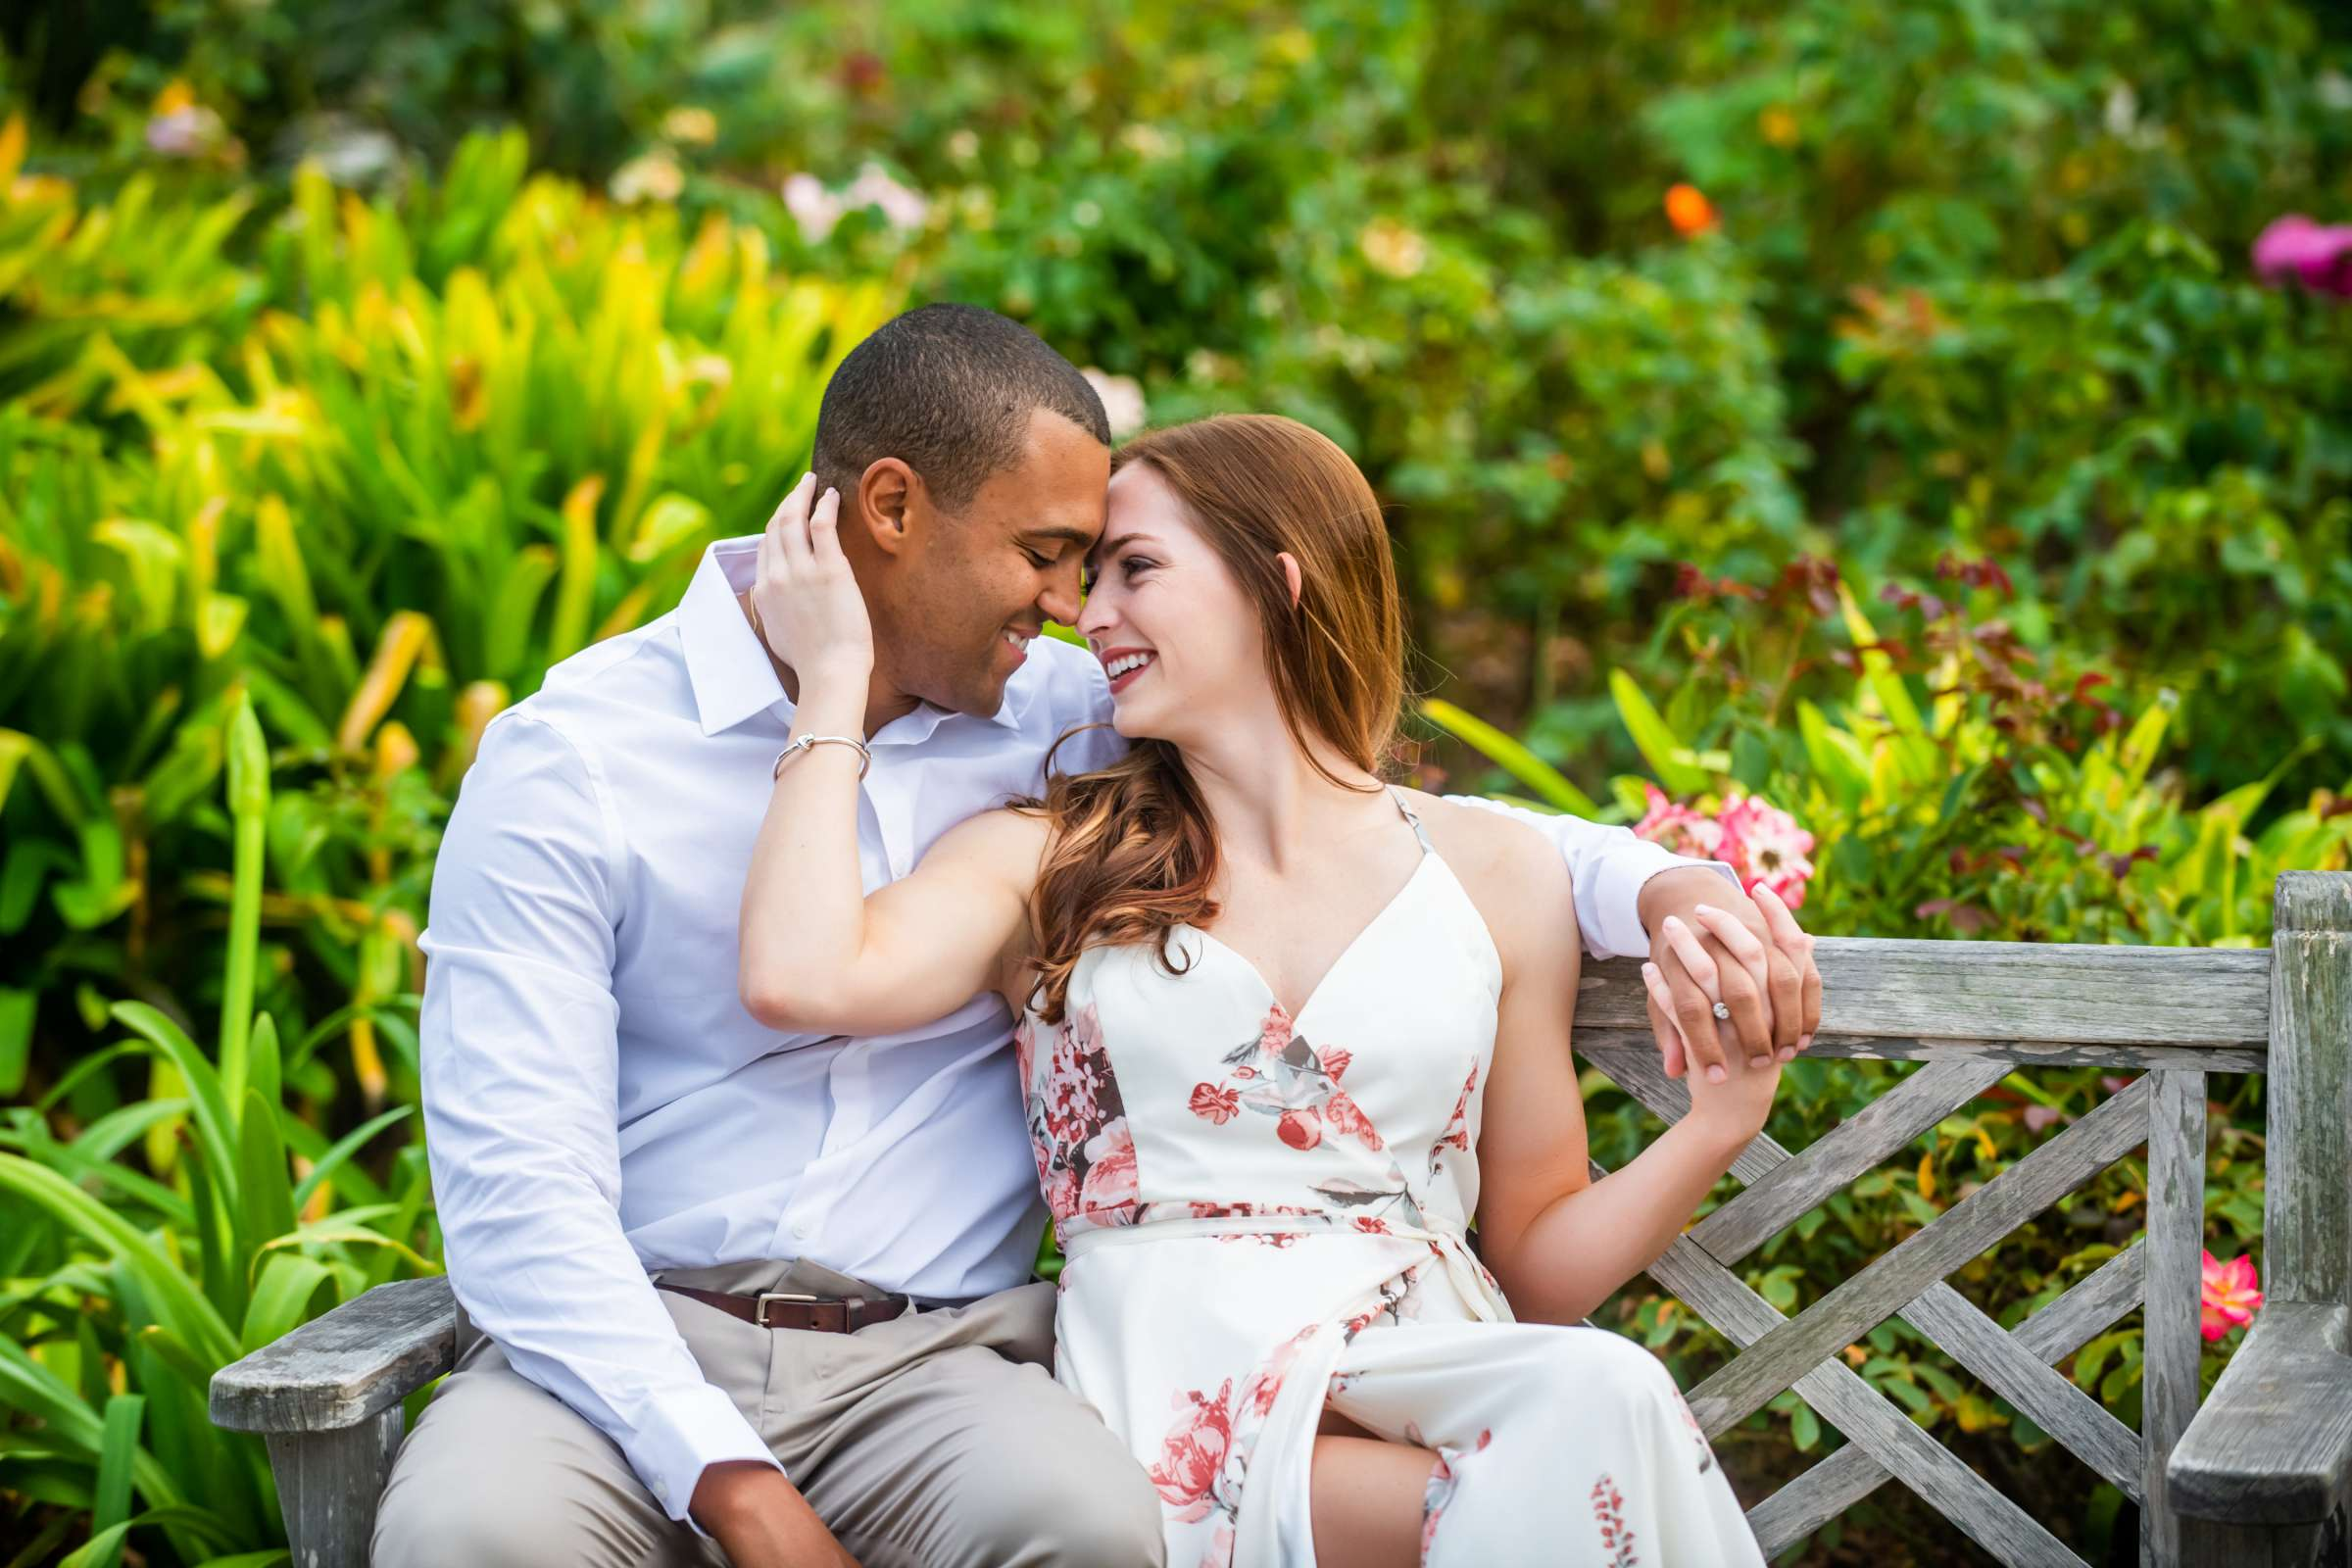 Engagement, Alexia and Kalin Engagement Photo #617321 by True Photography